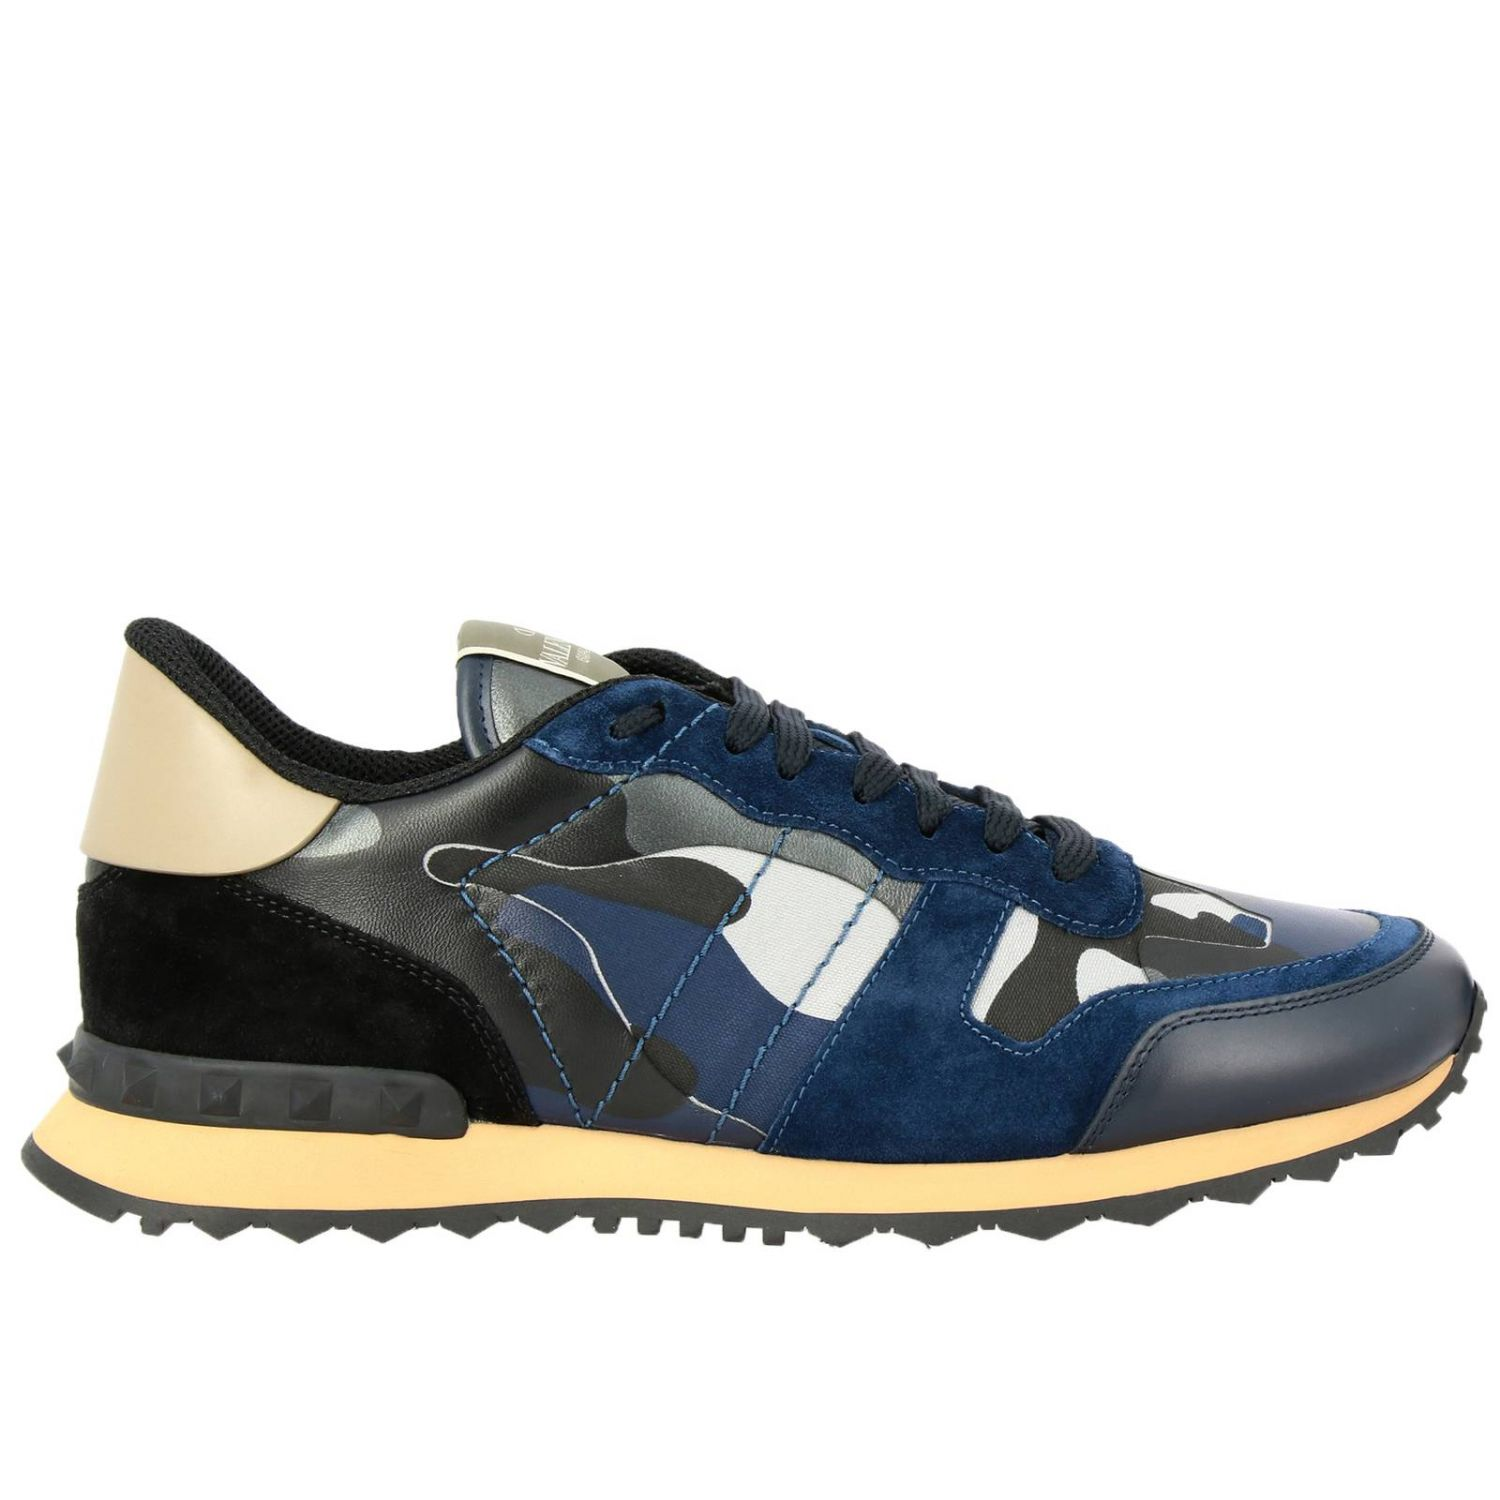 Valentino Garavani Rock runner camouflage suede and leather sneakers blue 1